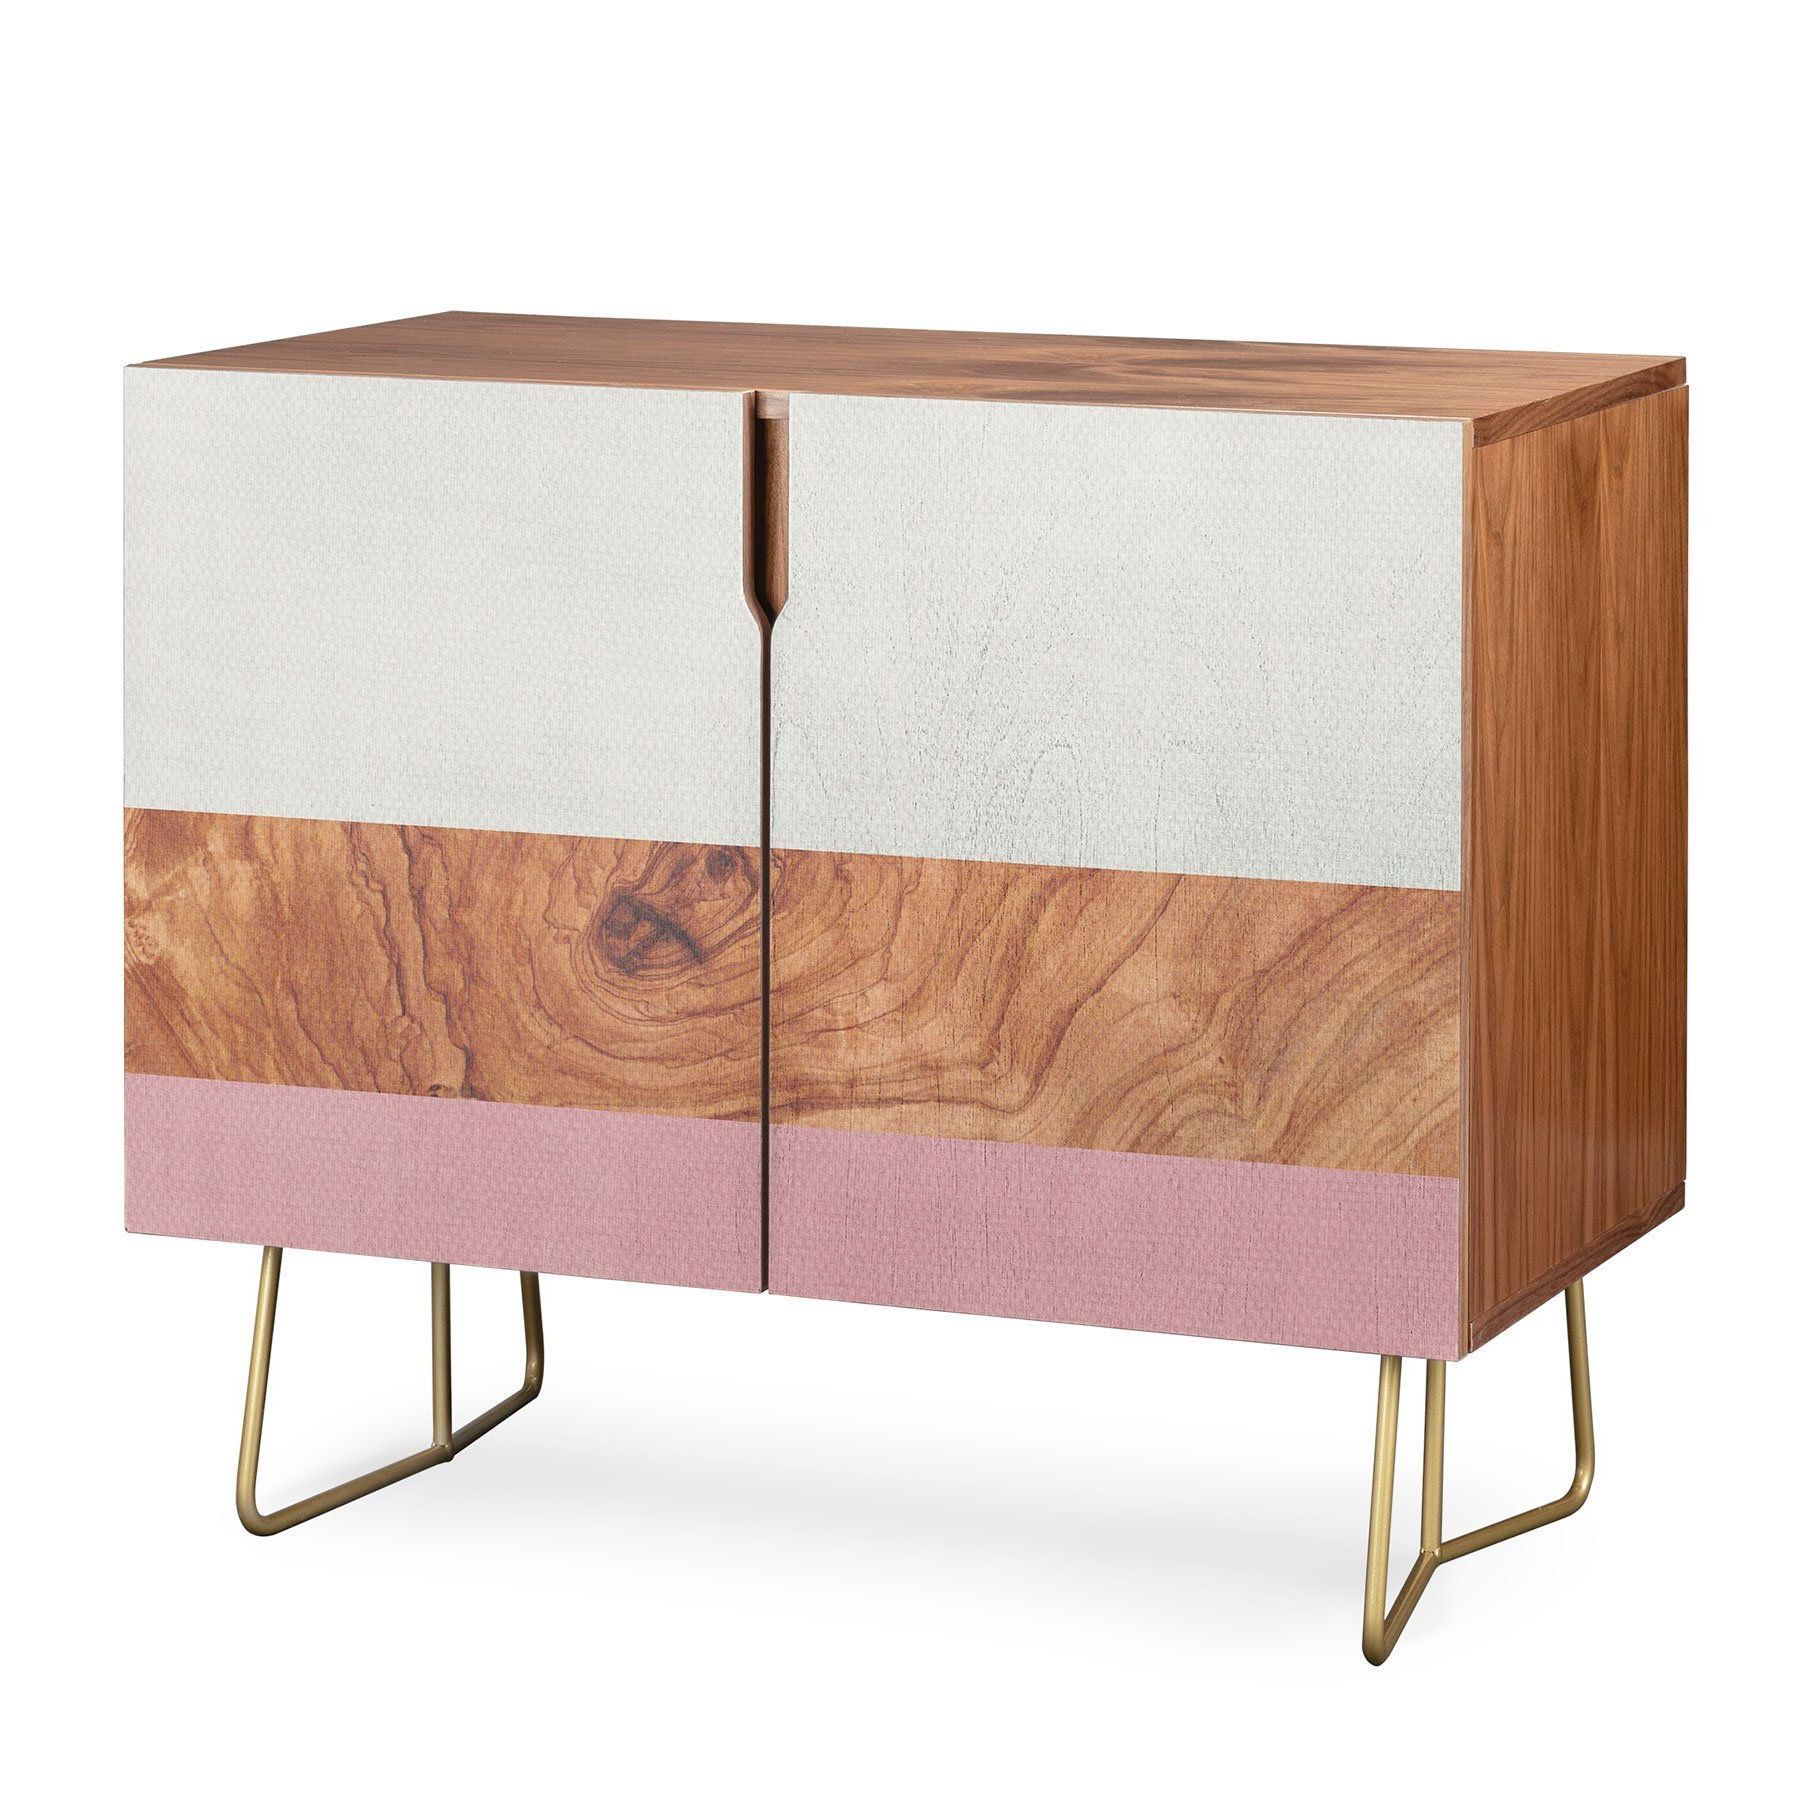 Deny Designs Line Geo Credenza (Birch Or Walnut, 2 Leg In Line Geo Credenzas (View 4 of 20)